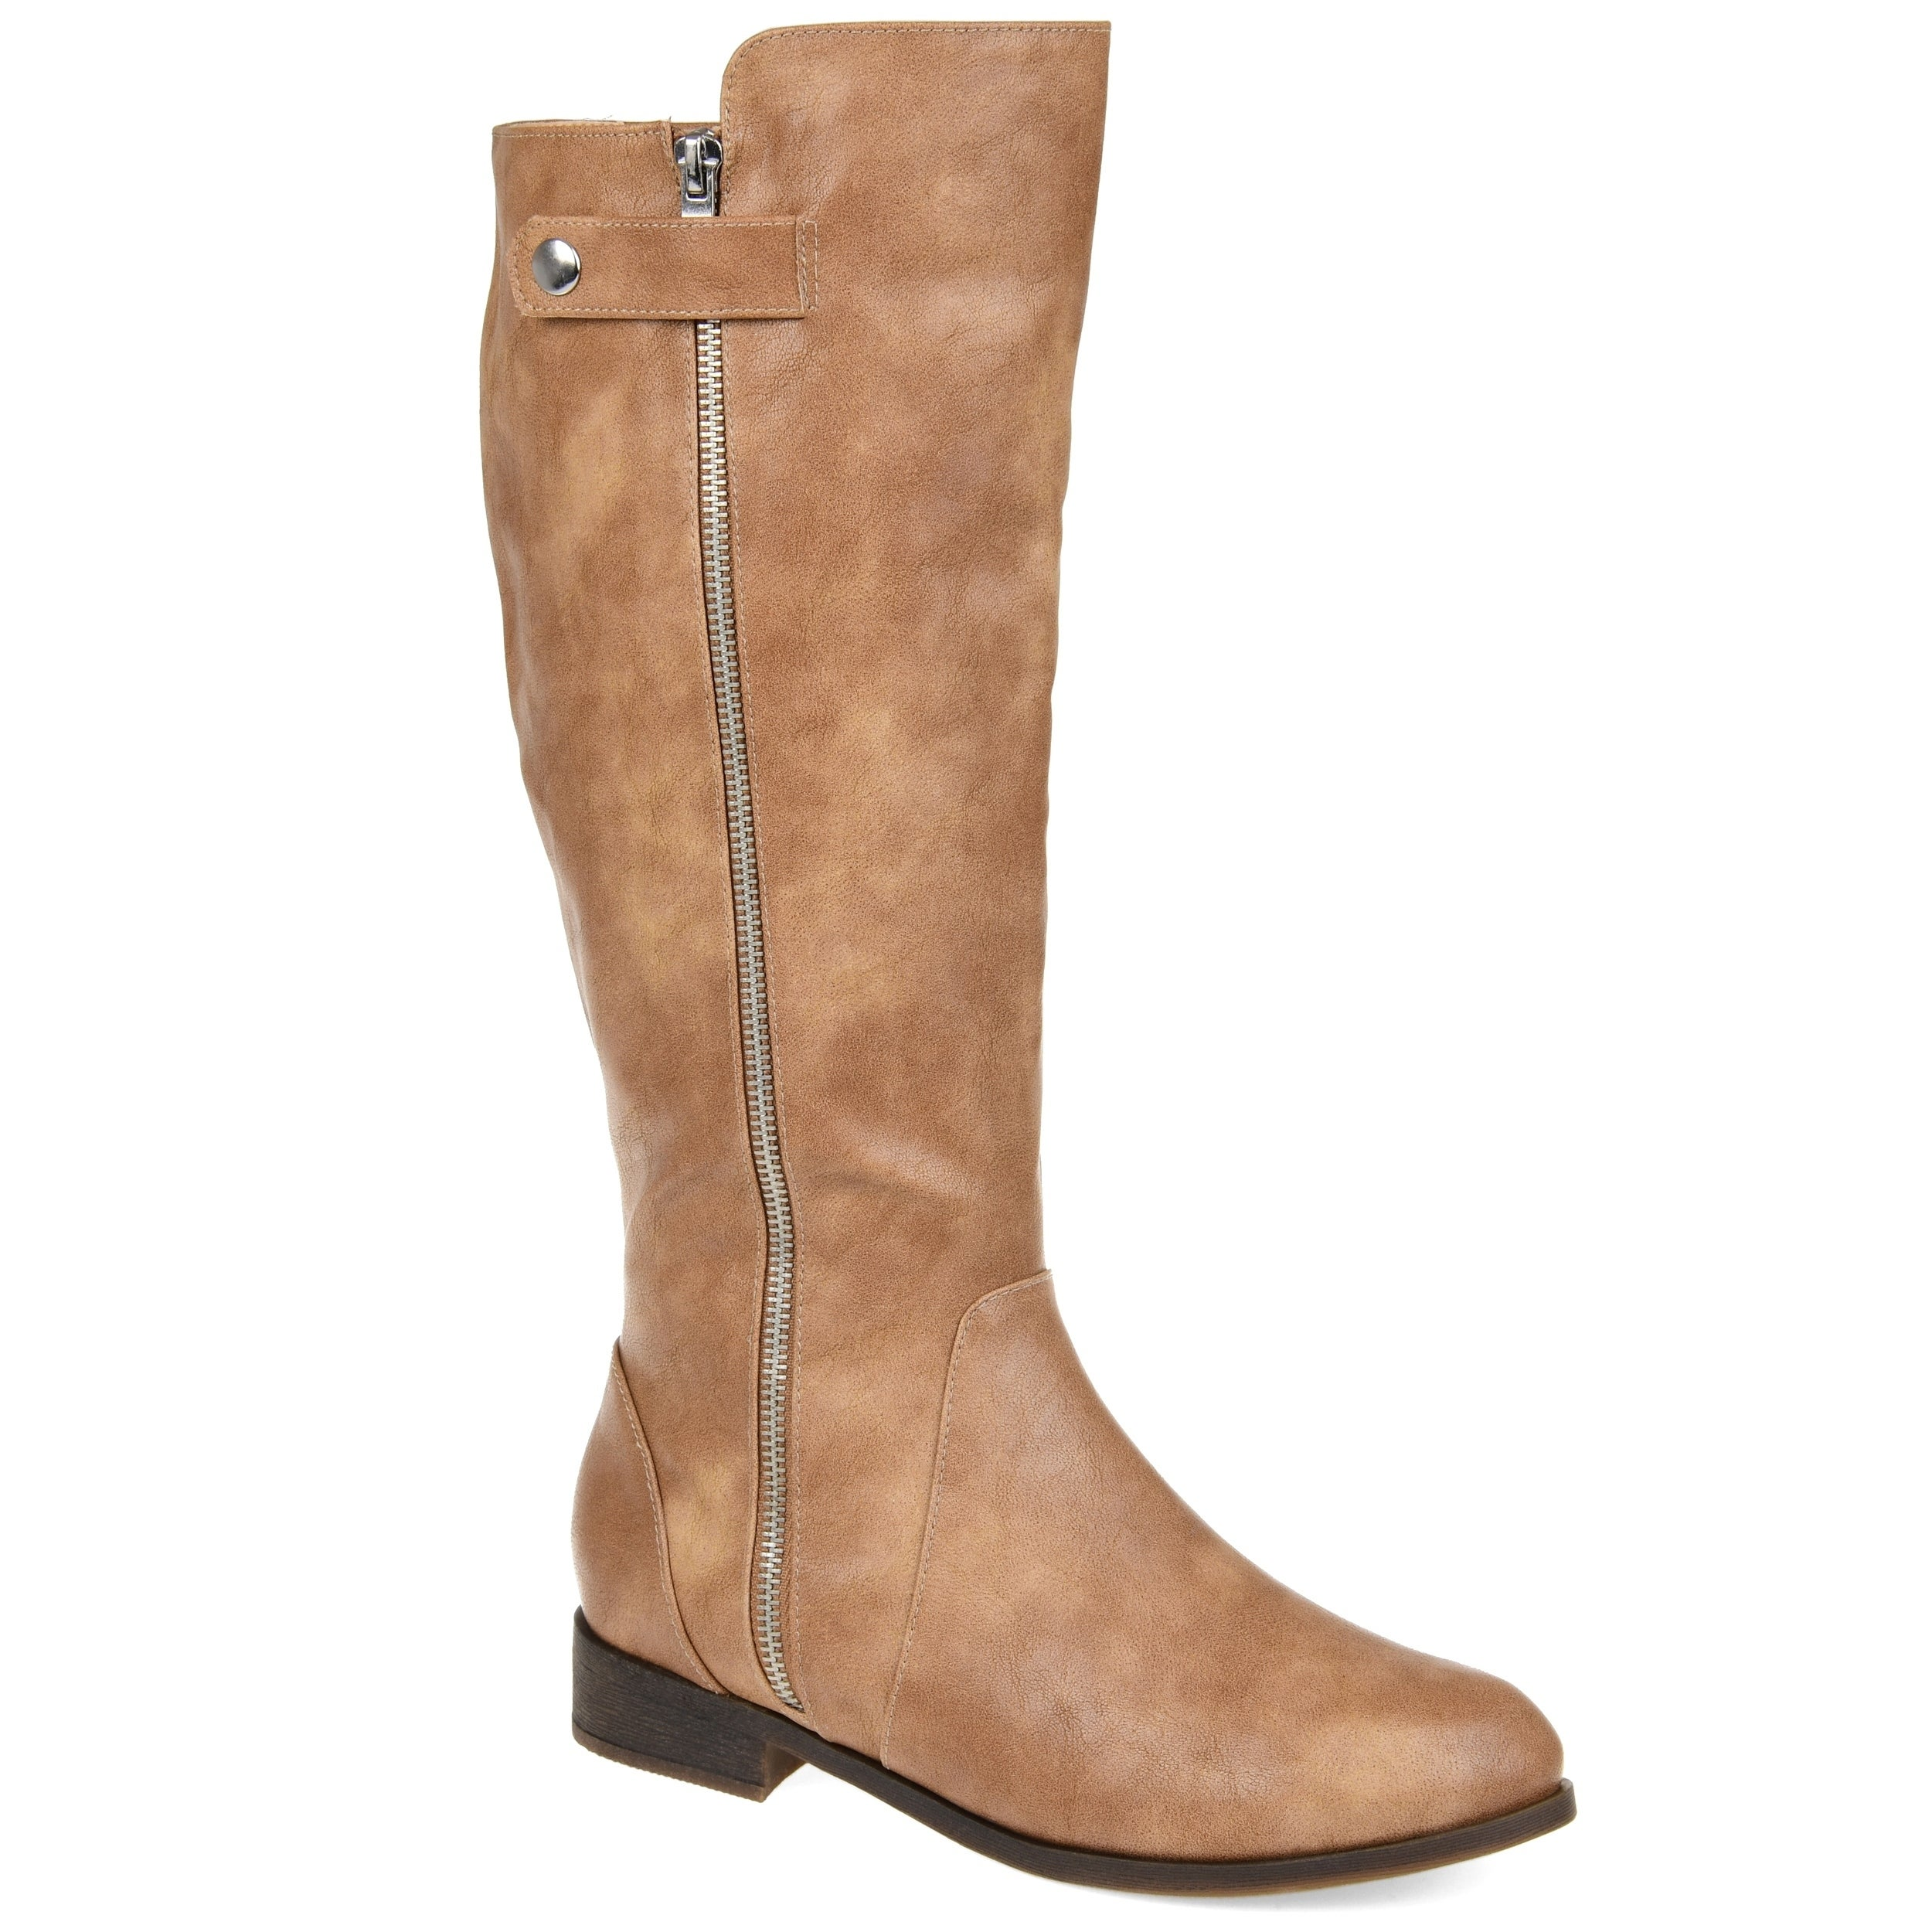 9e2e85aeea101 Shop Journee Collection Women's Comfort Kasim Boot - Free Shipping Today -  Overstock - 23144603